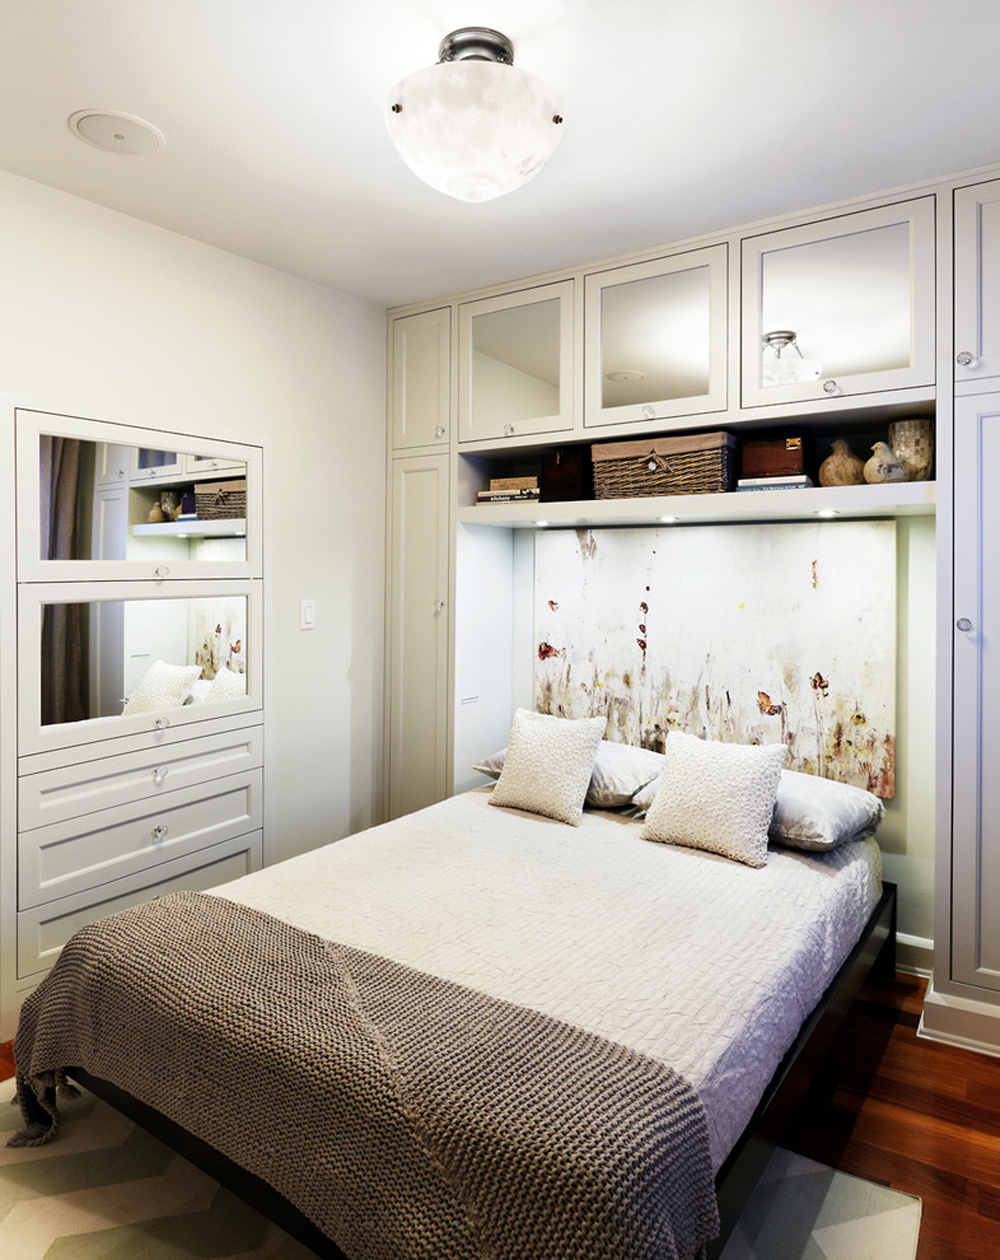 Bedroom storage ideas at Waverley-by-Sealy-Design-Inc to make the most of your space